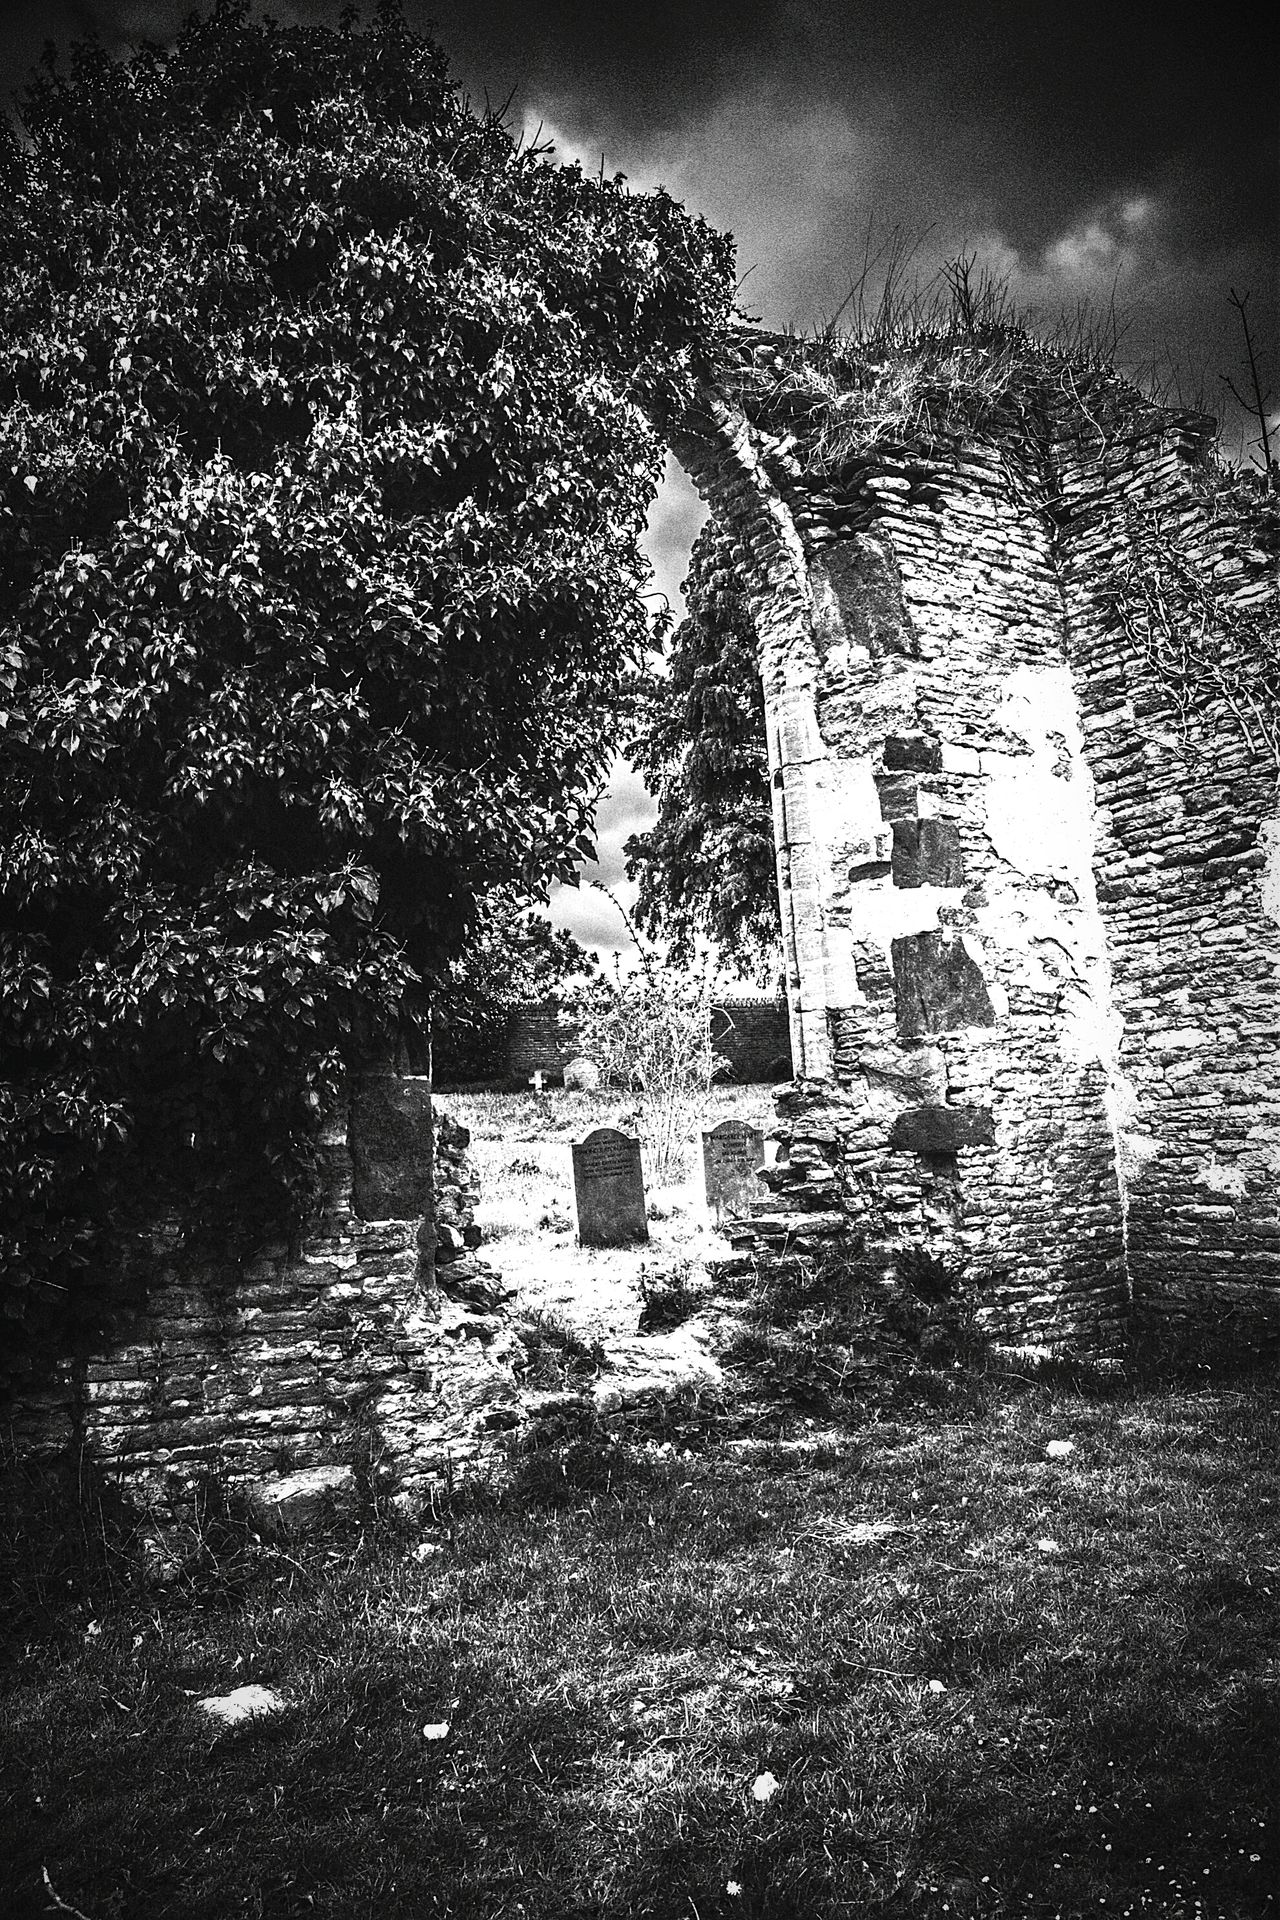 Ruins of St John's Old Church, Boughton, Northamptonshire. Blackandwhite Ruins Church Ruin Boughton Northamptonshire Archway Graveyard